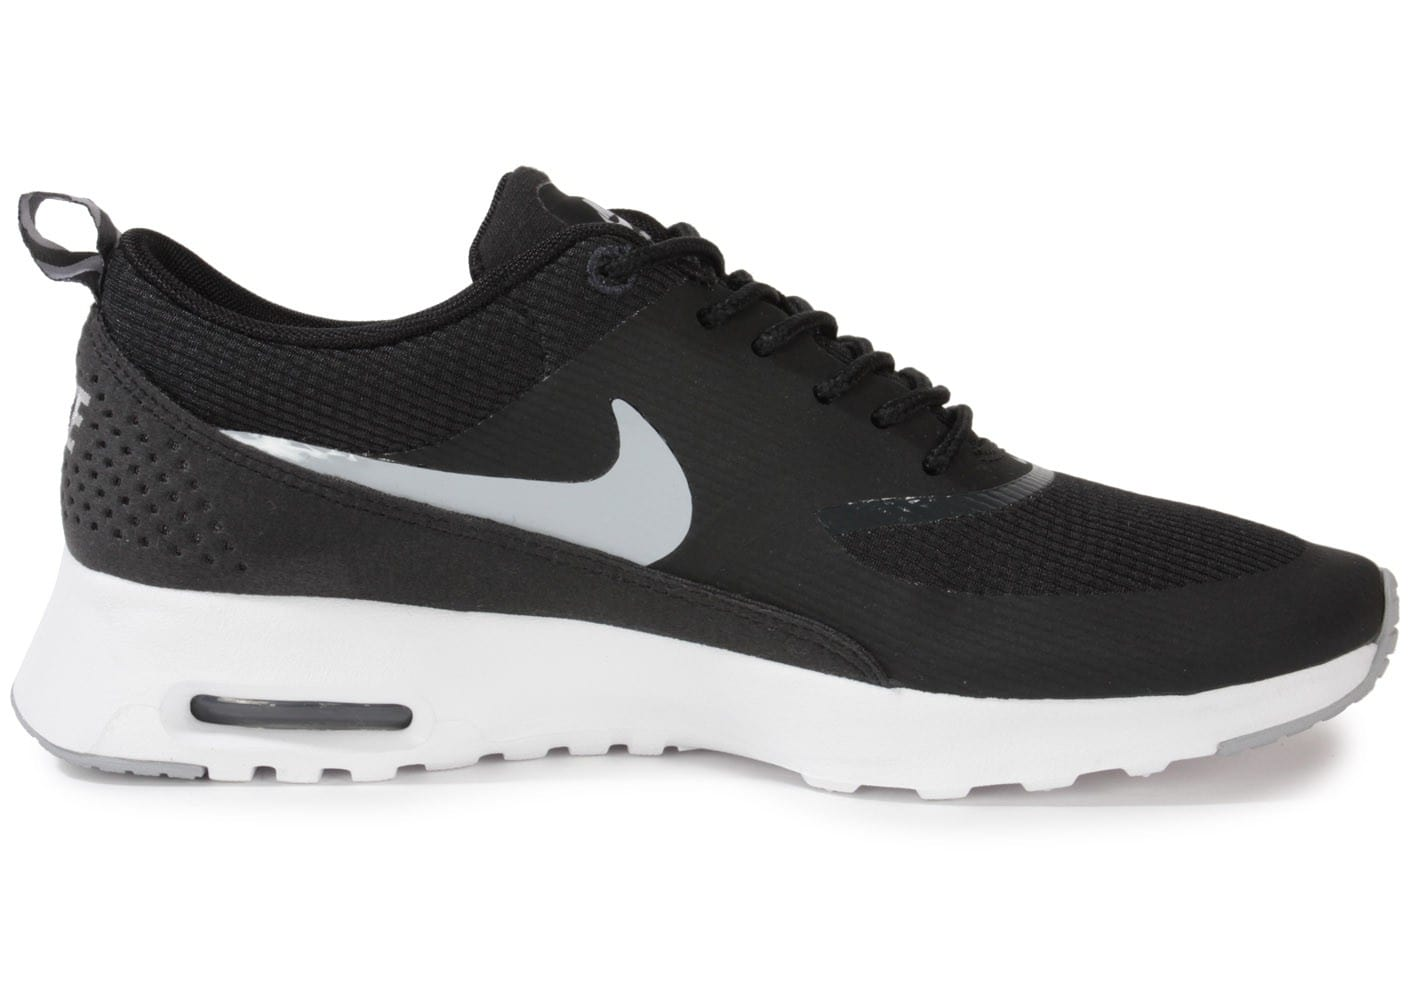 air max thea noir et blanche. Black Bedroom Furniture Sets. Home Design Ideas